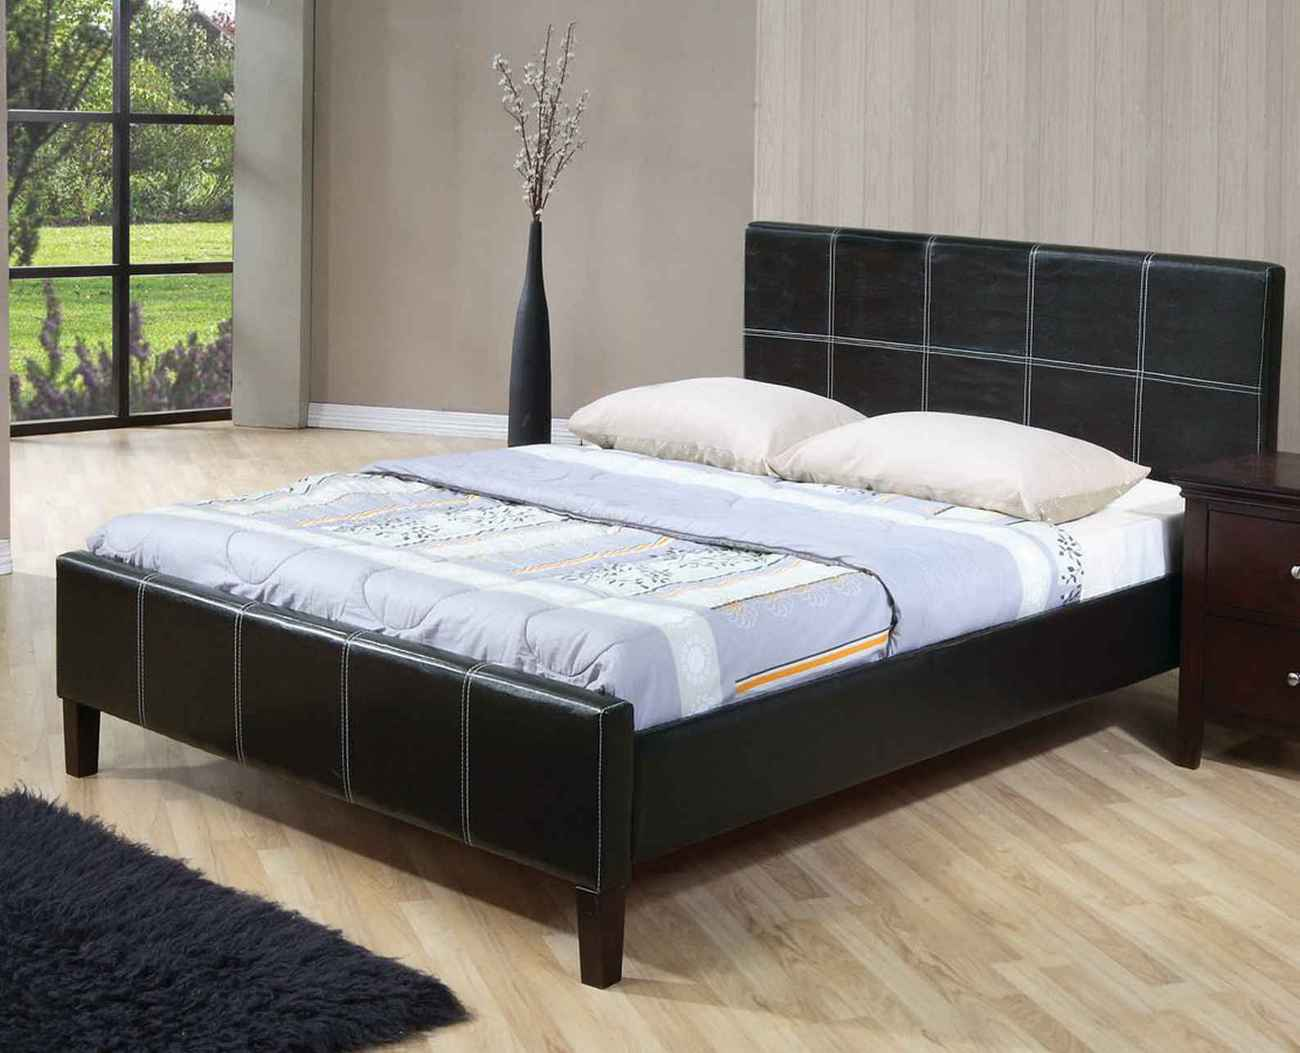 Cheap queen size beds and mattresses Queen mattress cheap